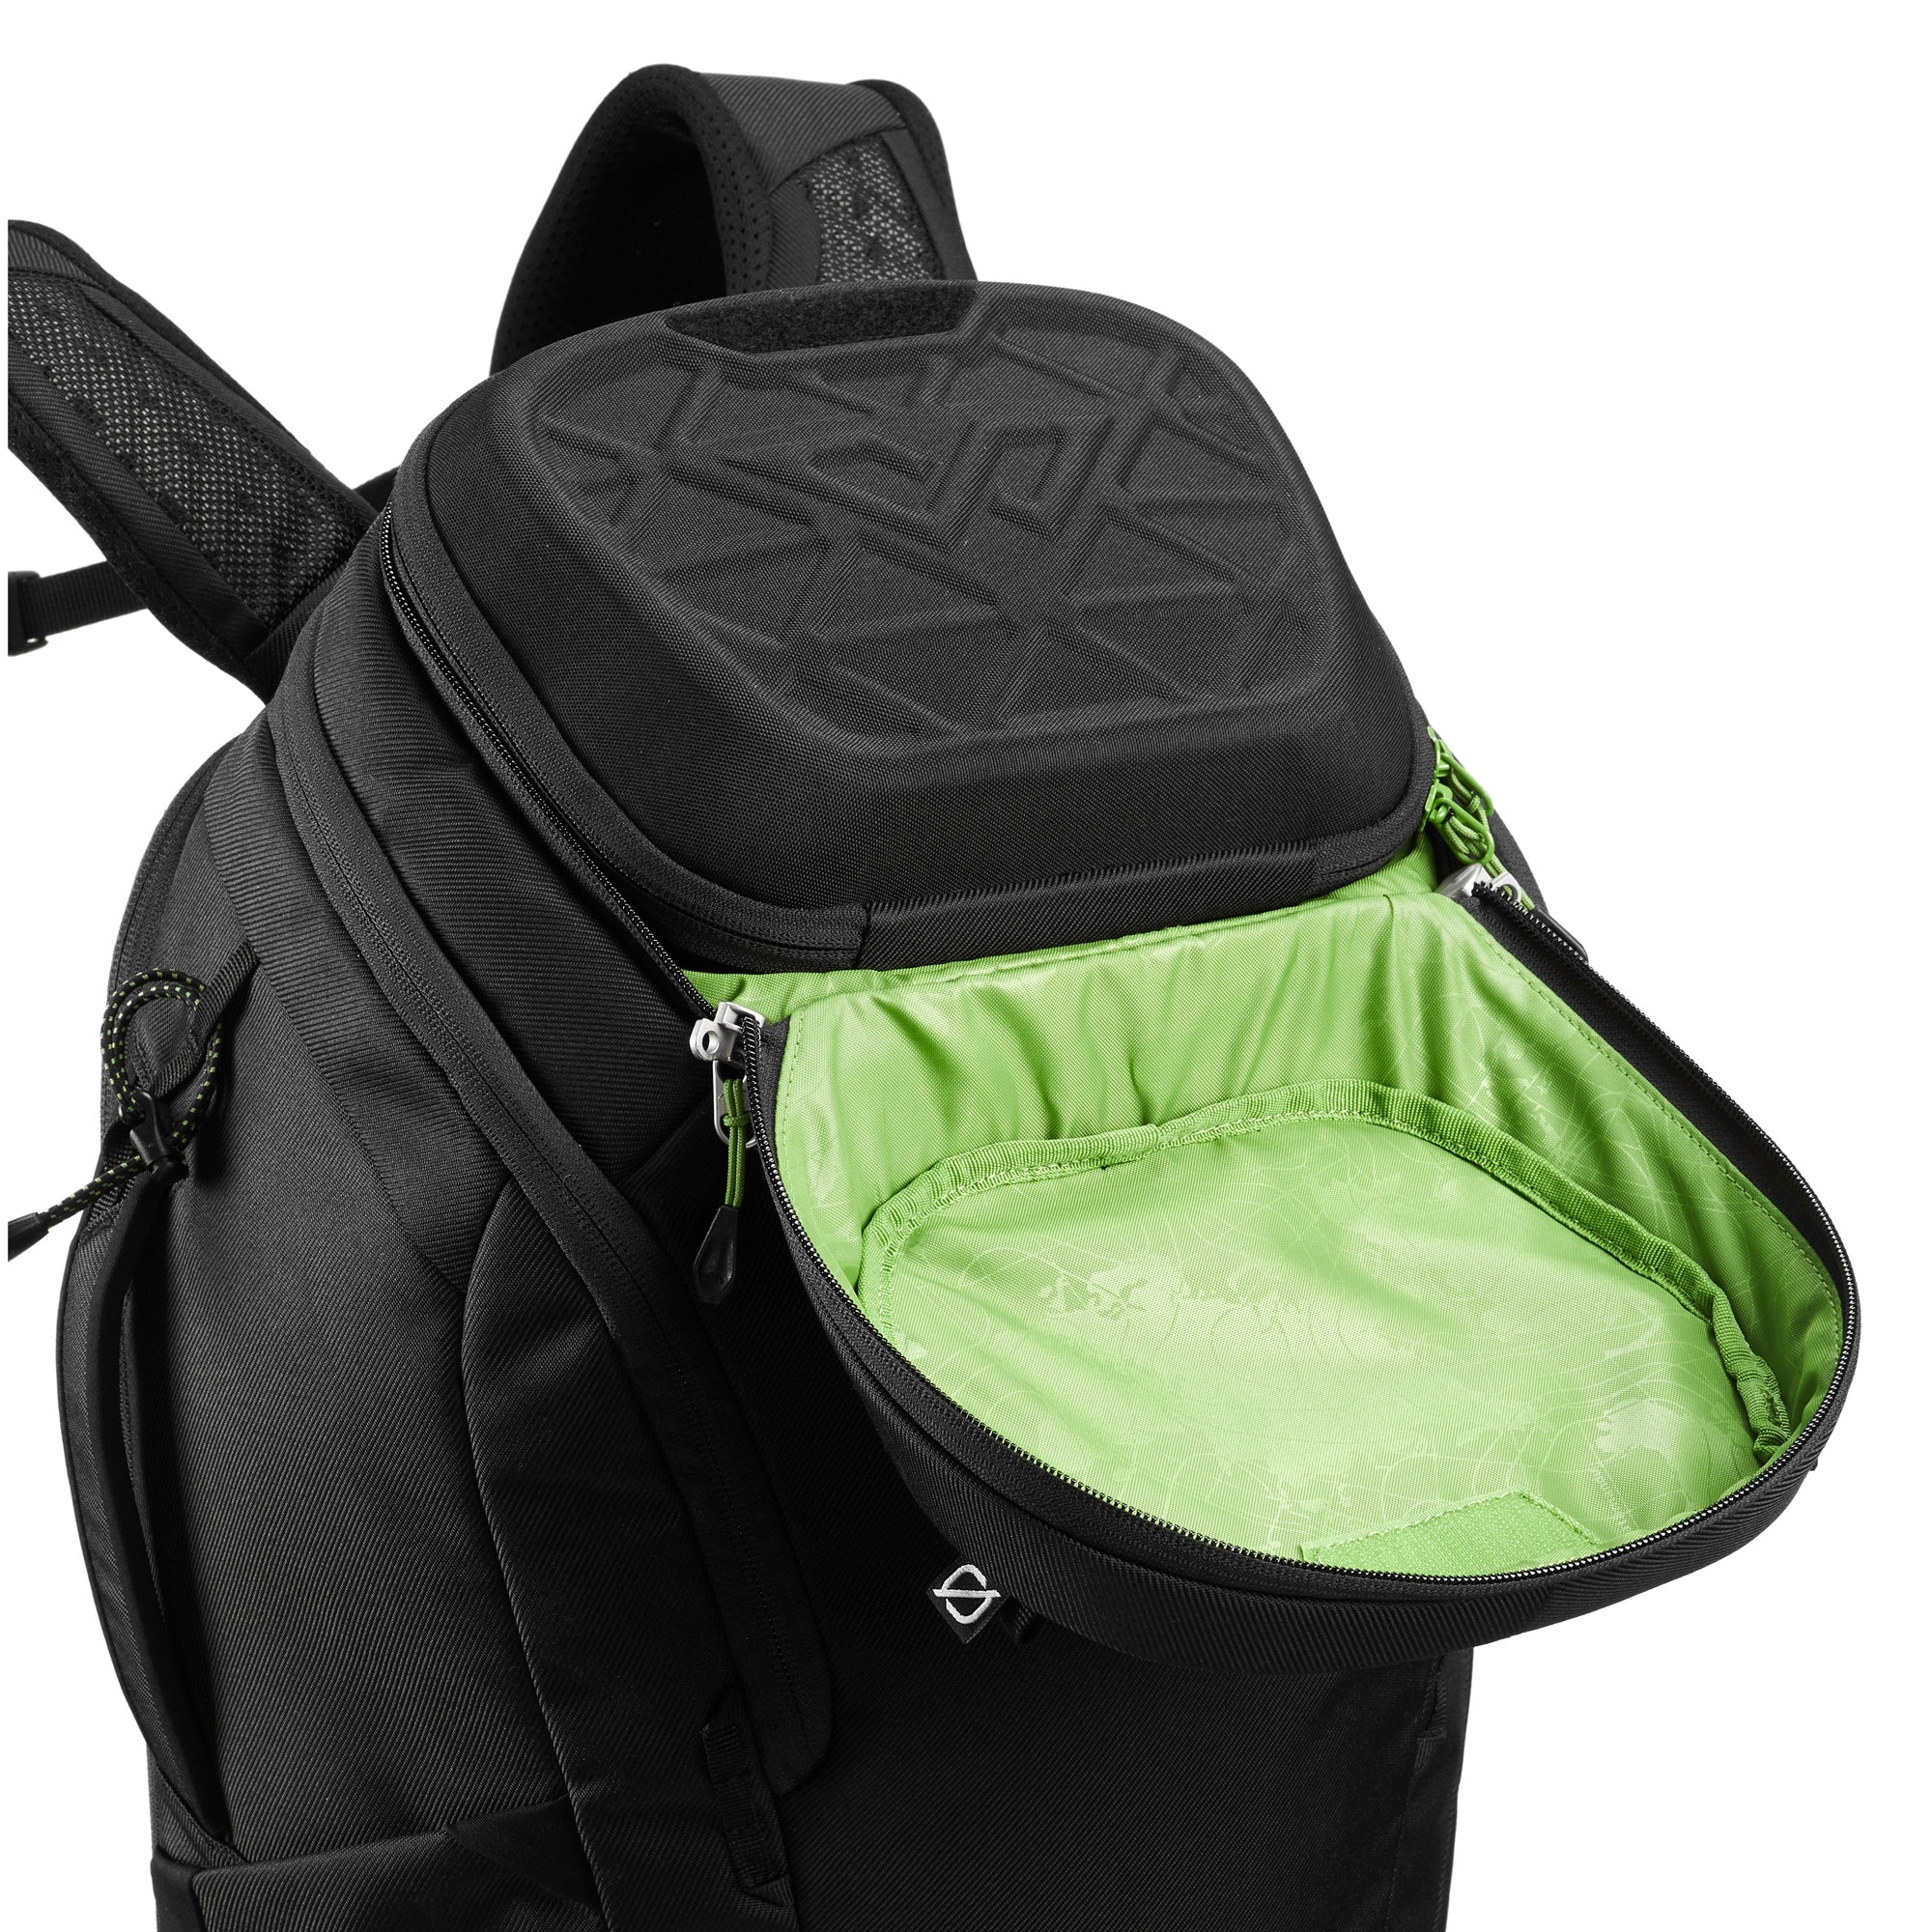 NEW-Kathmandu-Transfer-28L-Commuter-Bag-Laptop-Backpack-Rucksack-Travel-Pack-v3 thumbnail 9